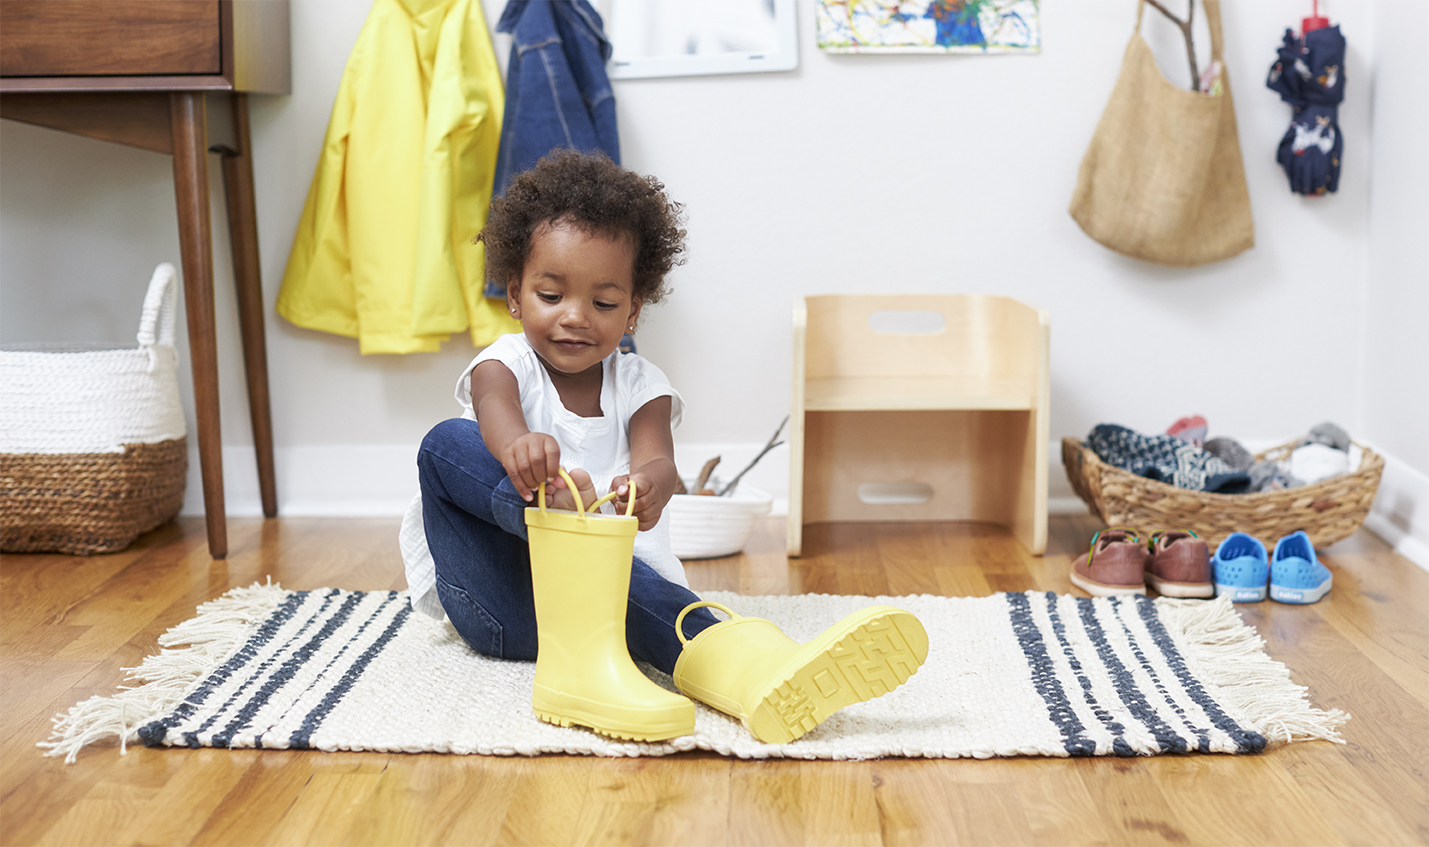 Little girl puts on her own boots.